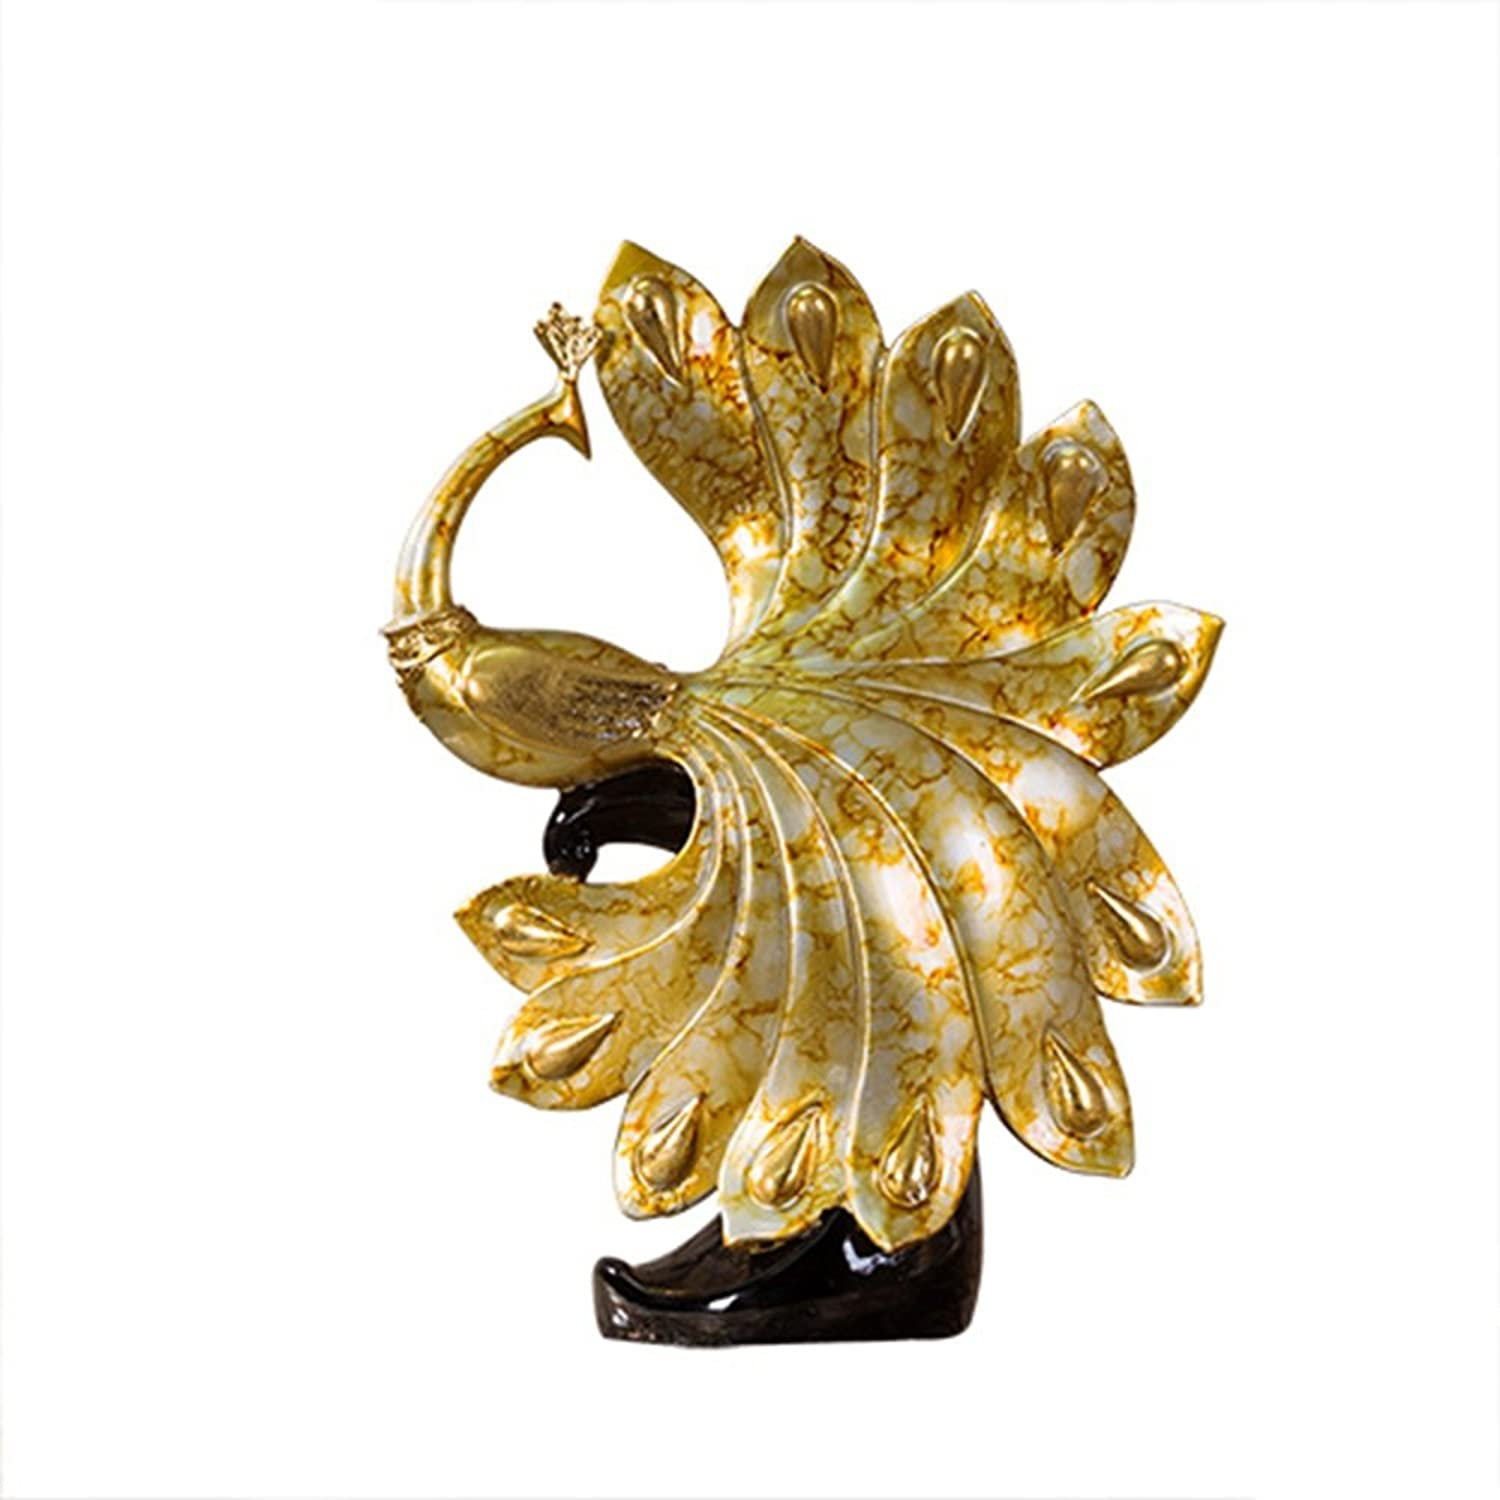 WENBO Home- Peacock Open Screen TV Cabinet Wine Cabinet Decorations Home Improvement Works of Art -Desktop Ornaments